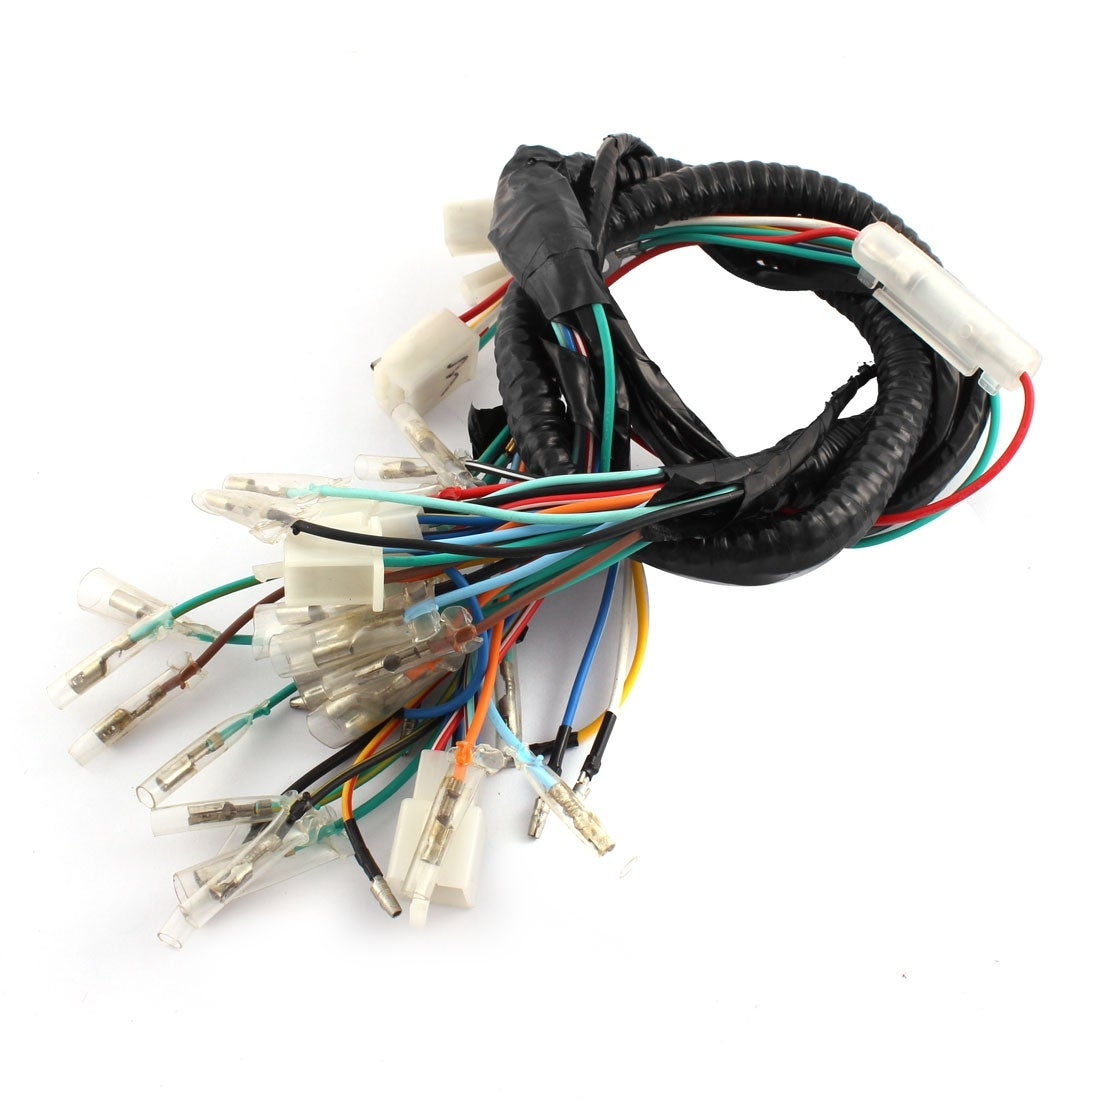 Shop Unique Bargains Motorcycle Ultima Complete System Electrical Wiring Harness For Jh70 Free Shipping On Orders Over 45 18103846